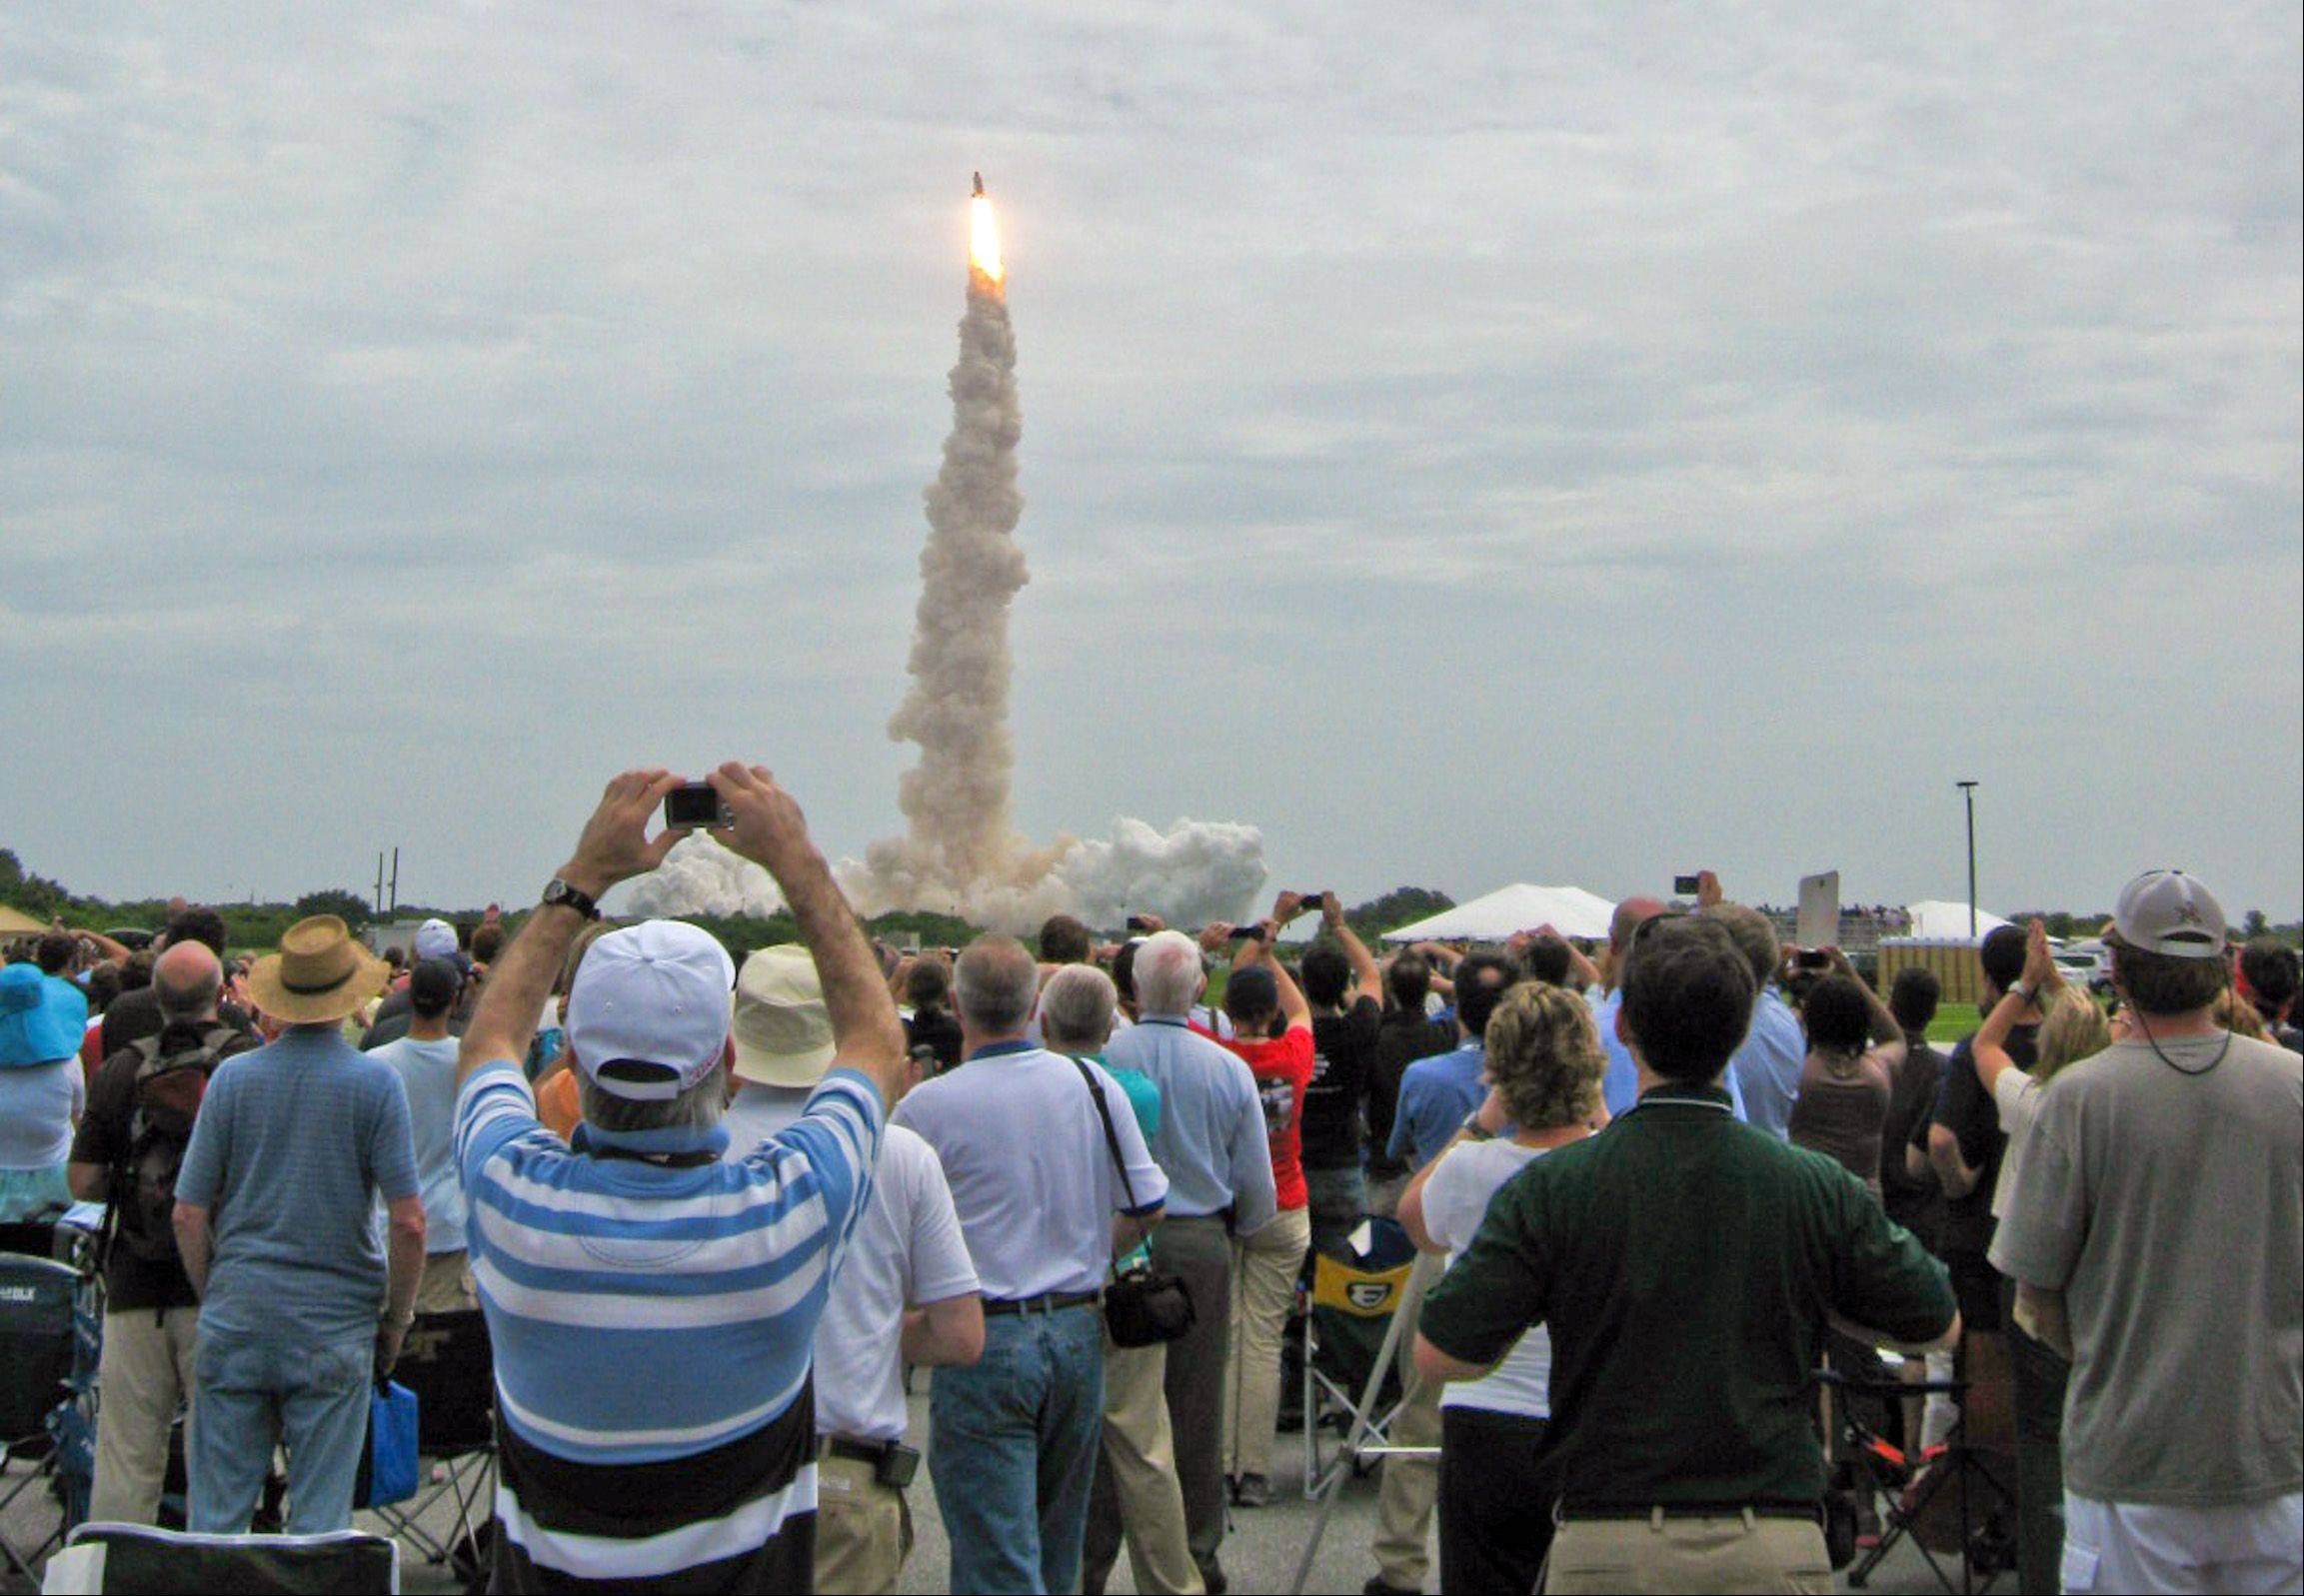 Atlantis lifts off from Launchpad 39A at 11:29:09 a.m. EST Friday. The Carthage Microgravity Team watched the launch from the grounds of KSC, just outside the Launch Control Center.